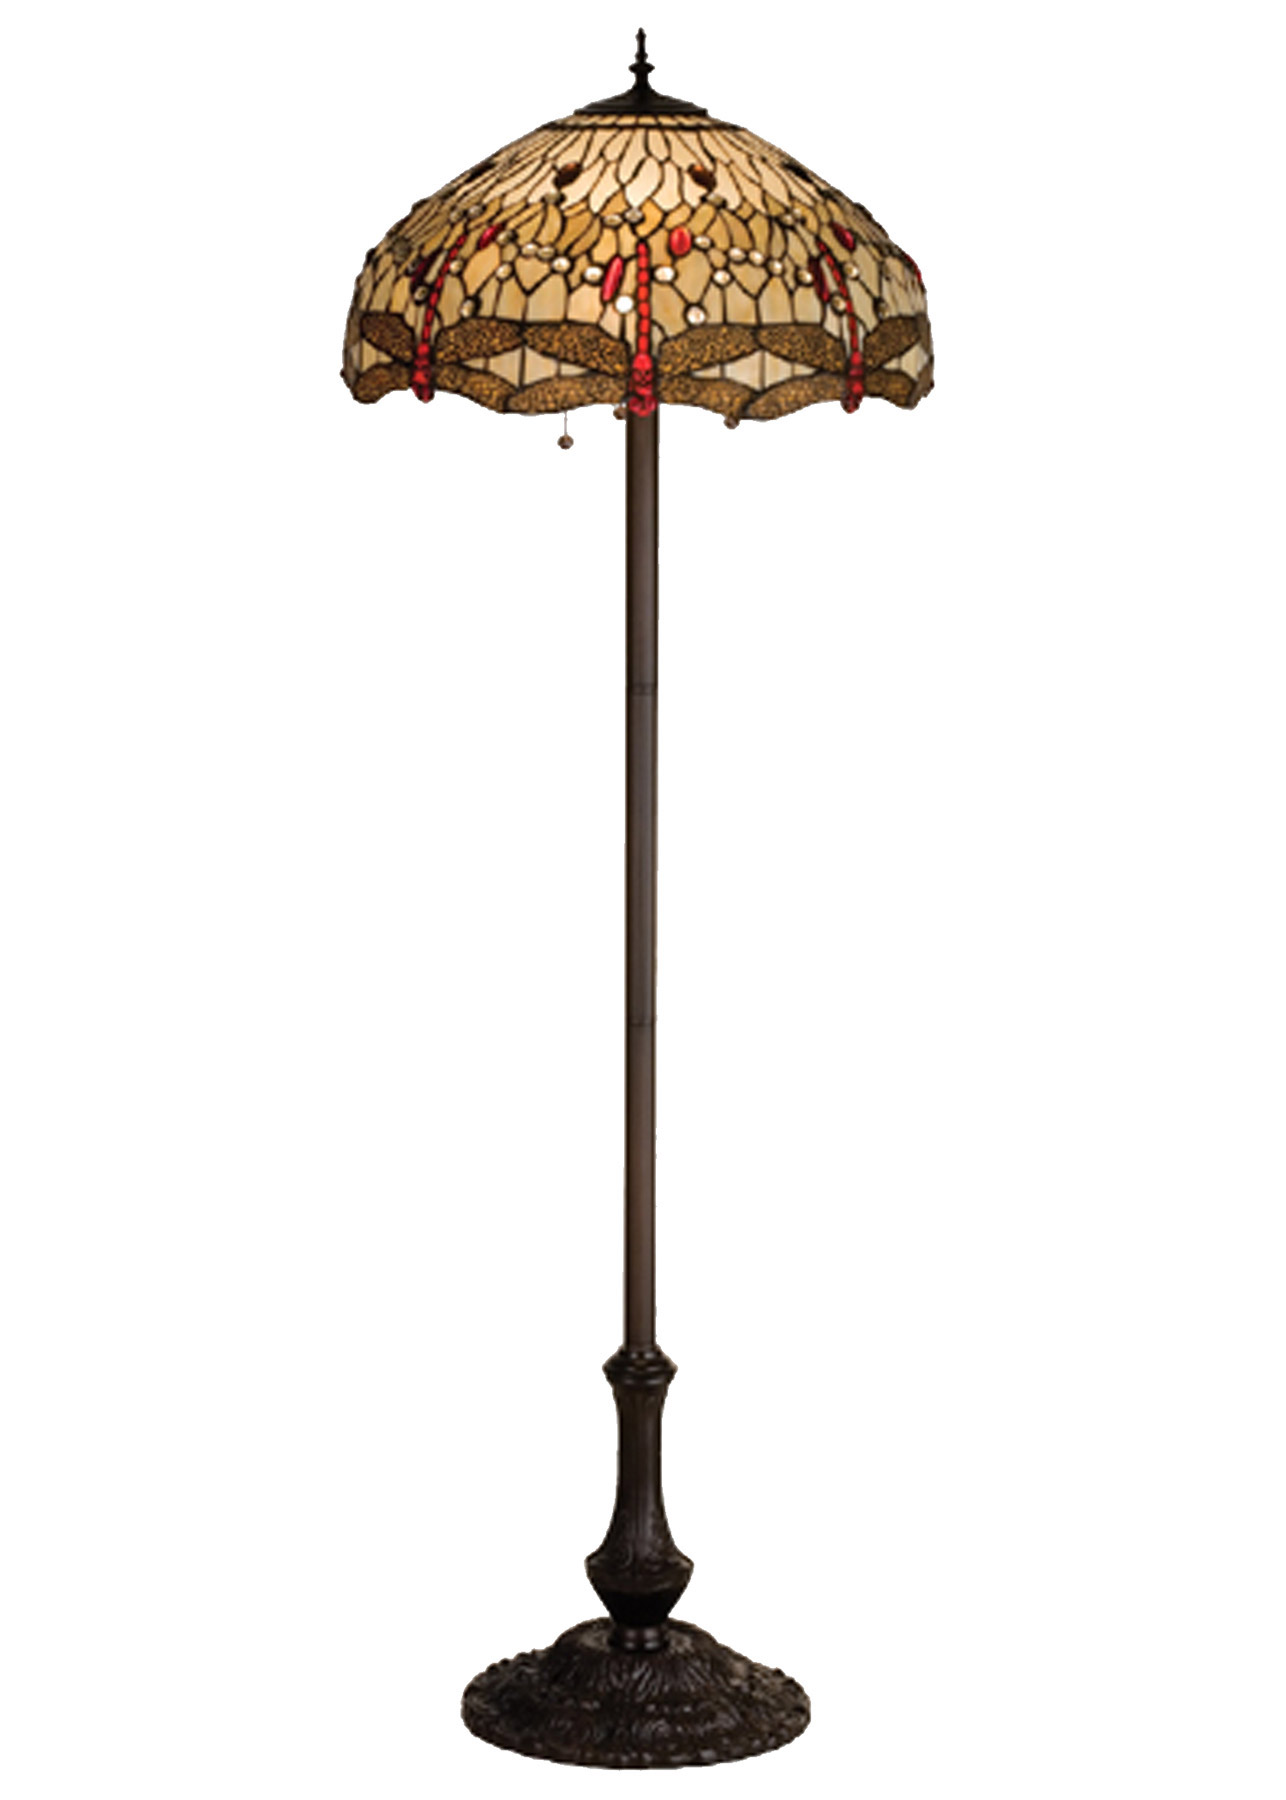 Meyda 17473 Tiffany Hanginghead Dragonfly Floor Lamp